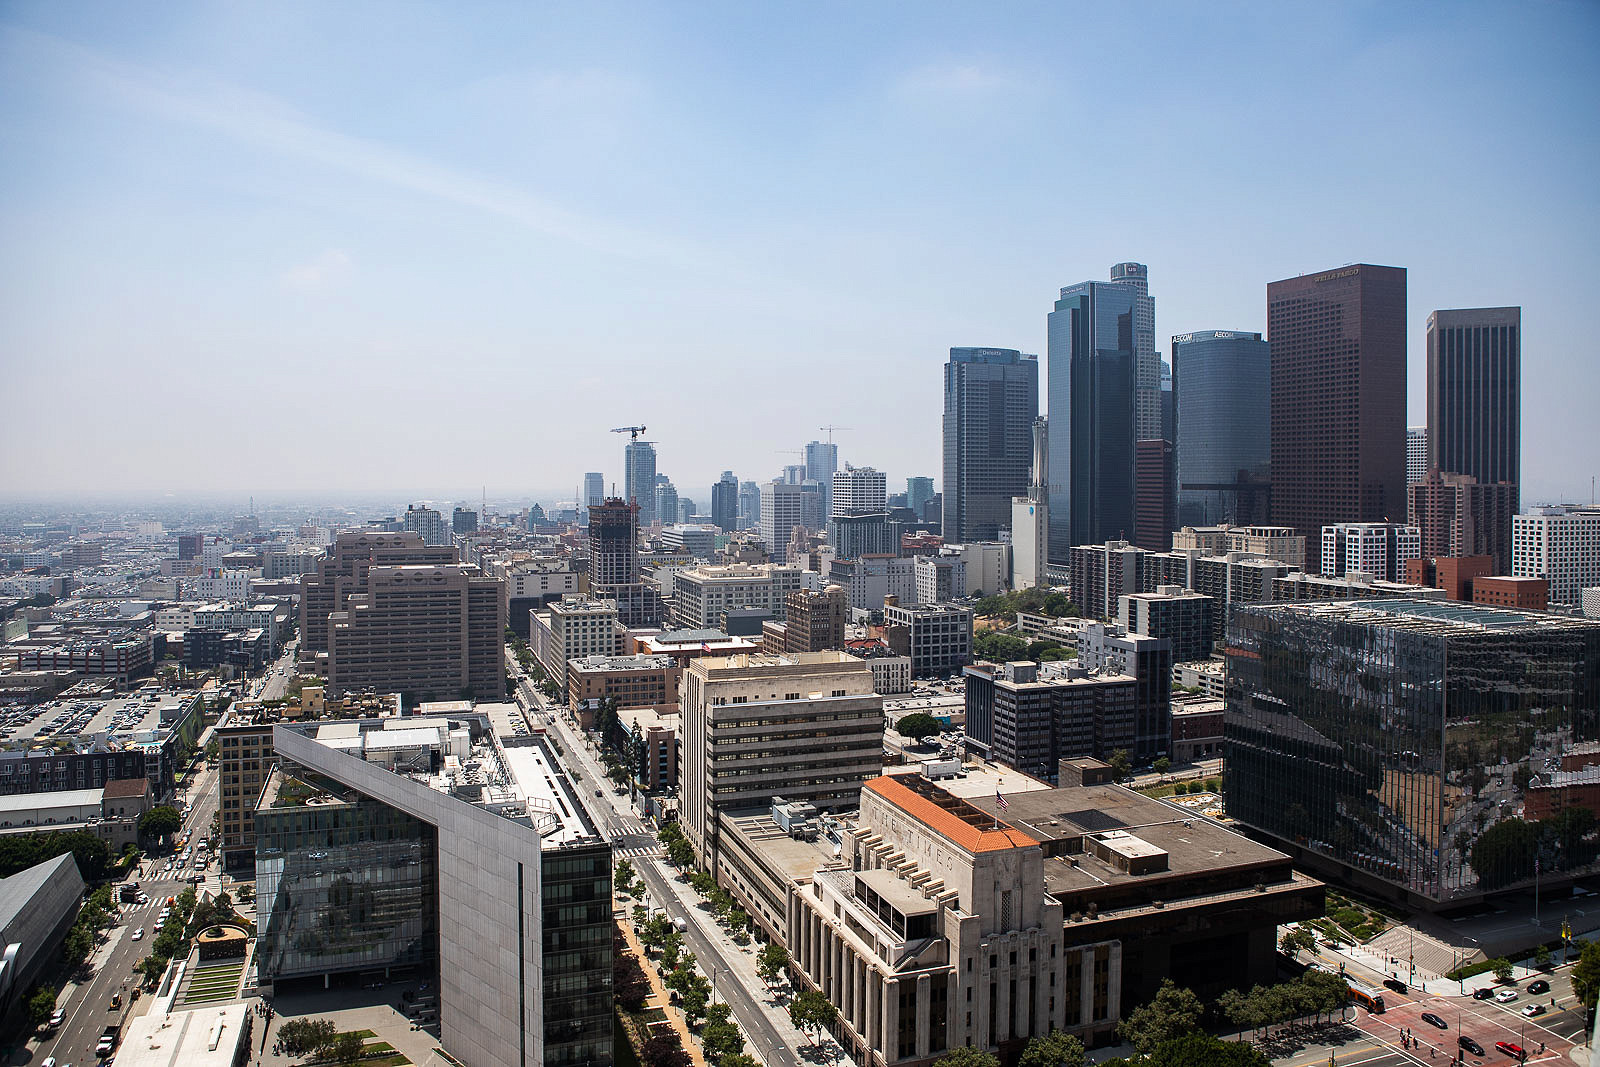 72 hours in Los Angeles: the best view is for free, the best food is Indian and even the worst hotel costs money